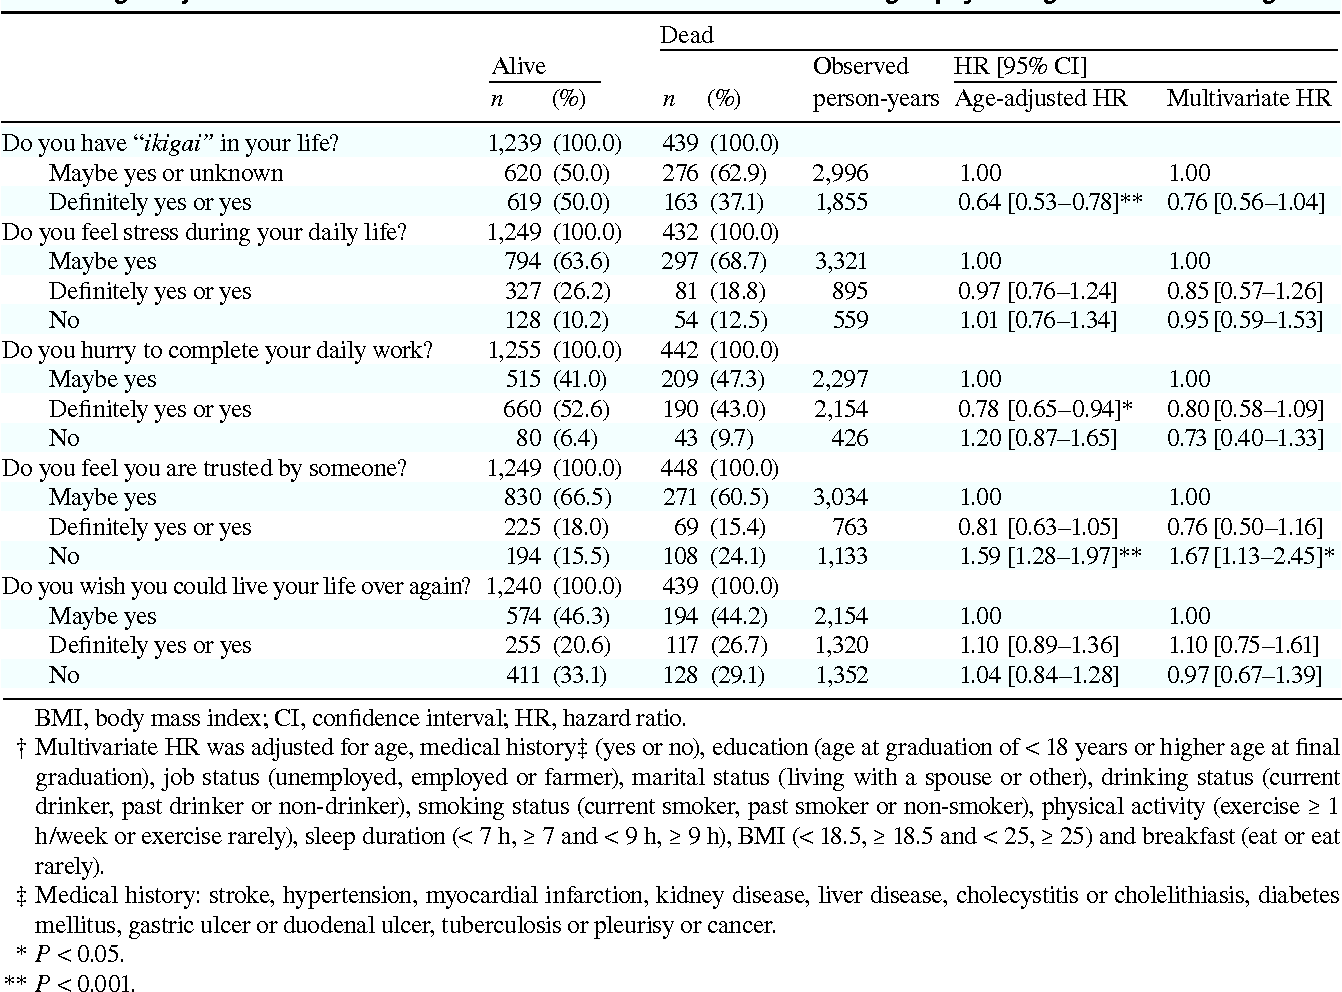 Table 7. Age-adjusted and multivariate HRs and 95% CIs for death according to psychological factors among men